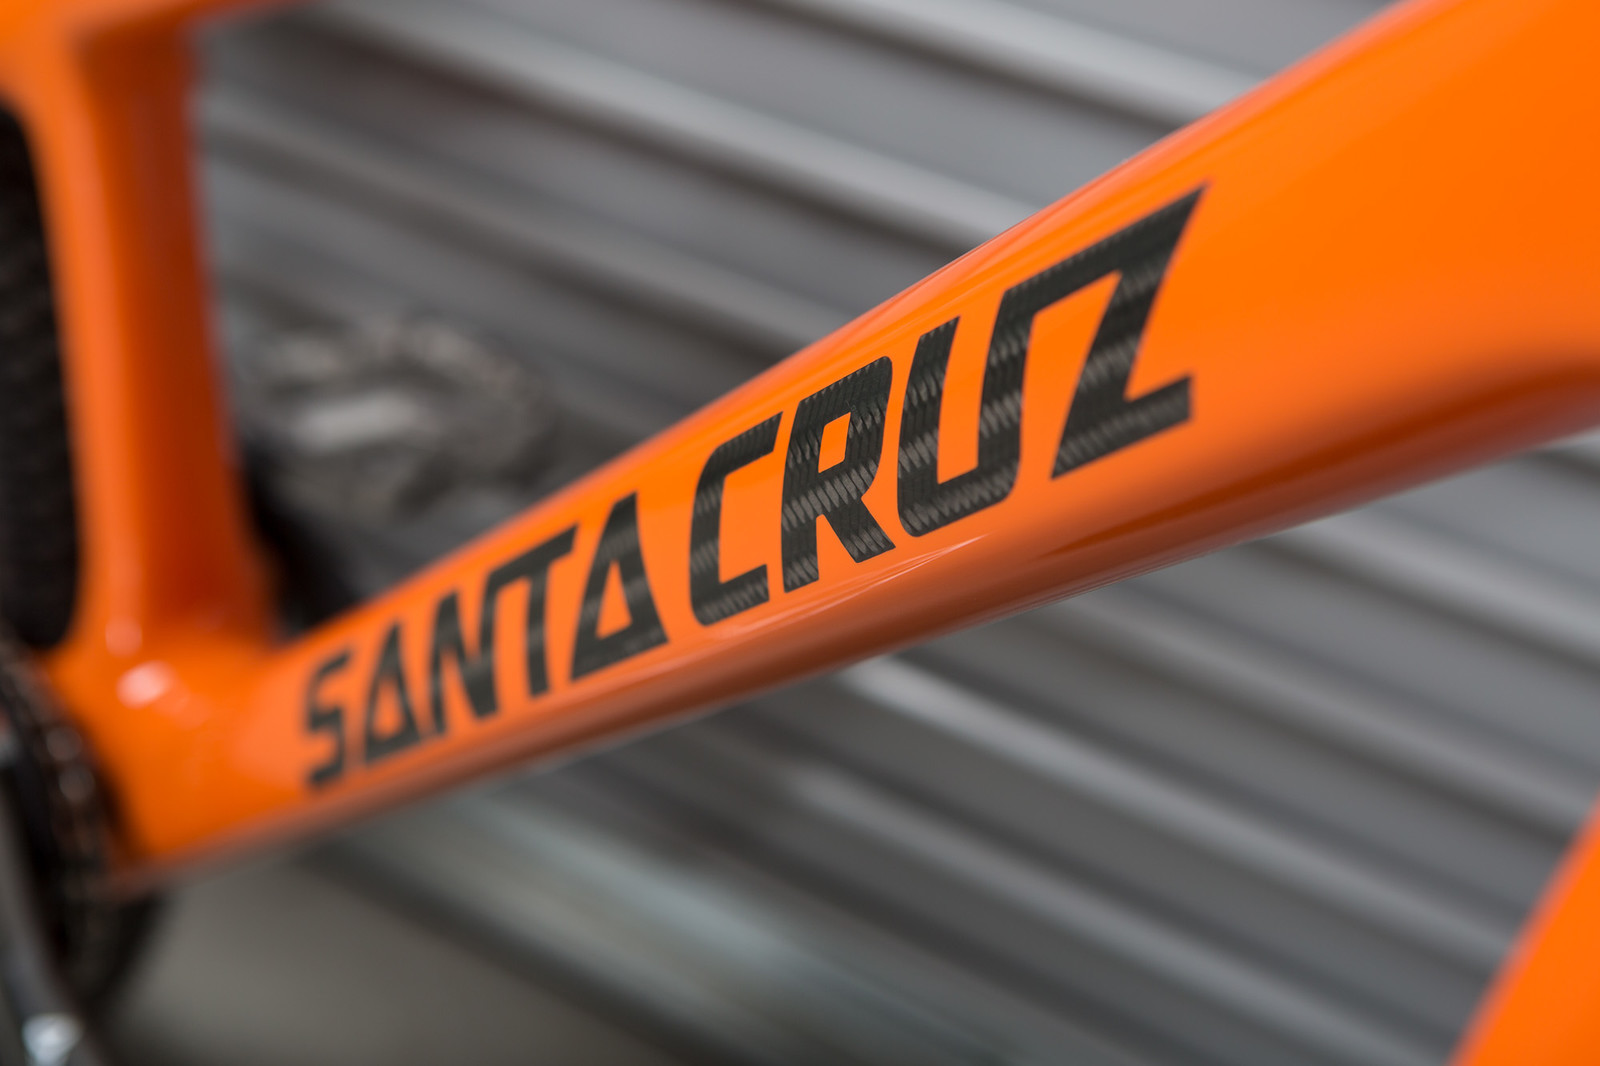 If you're going to develop a new manufacturing process, you may as well do it with a rad purpose. The bike you see before you is the result of a massive in-house effort at Santa Cruz headquarters in California.